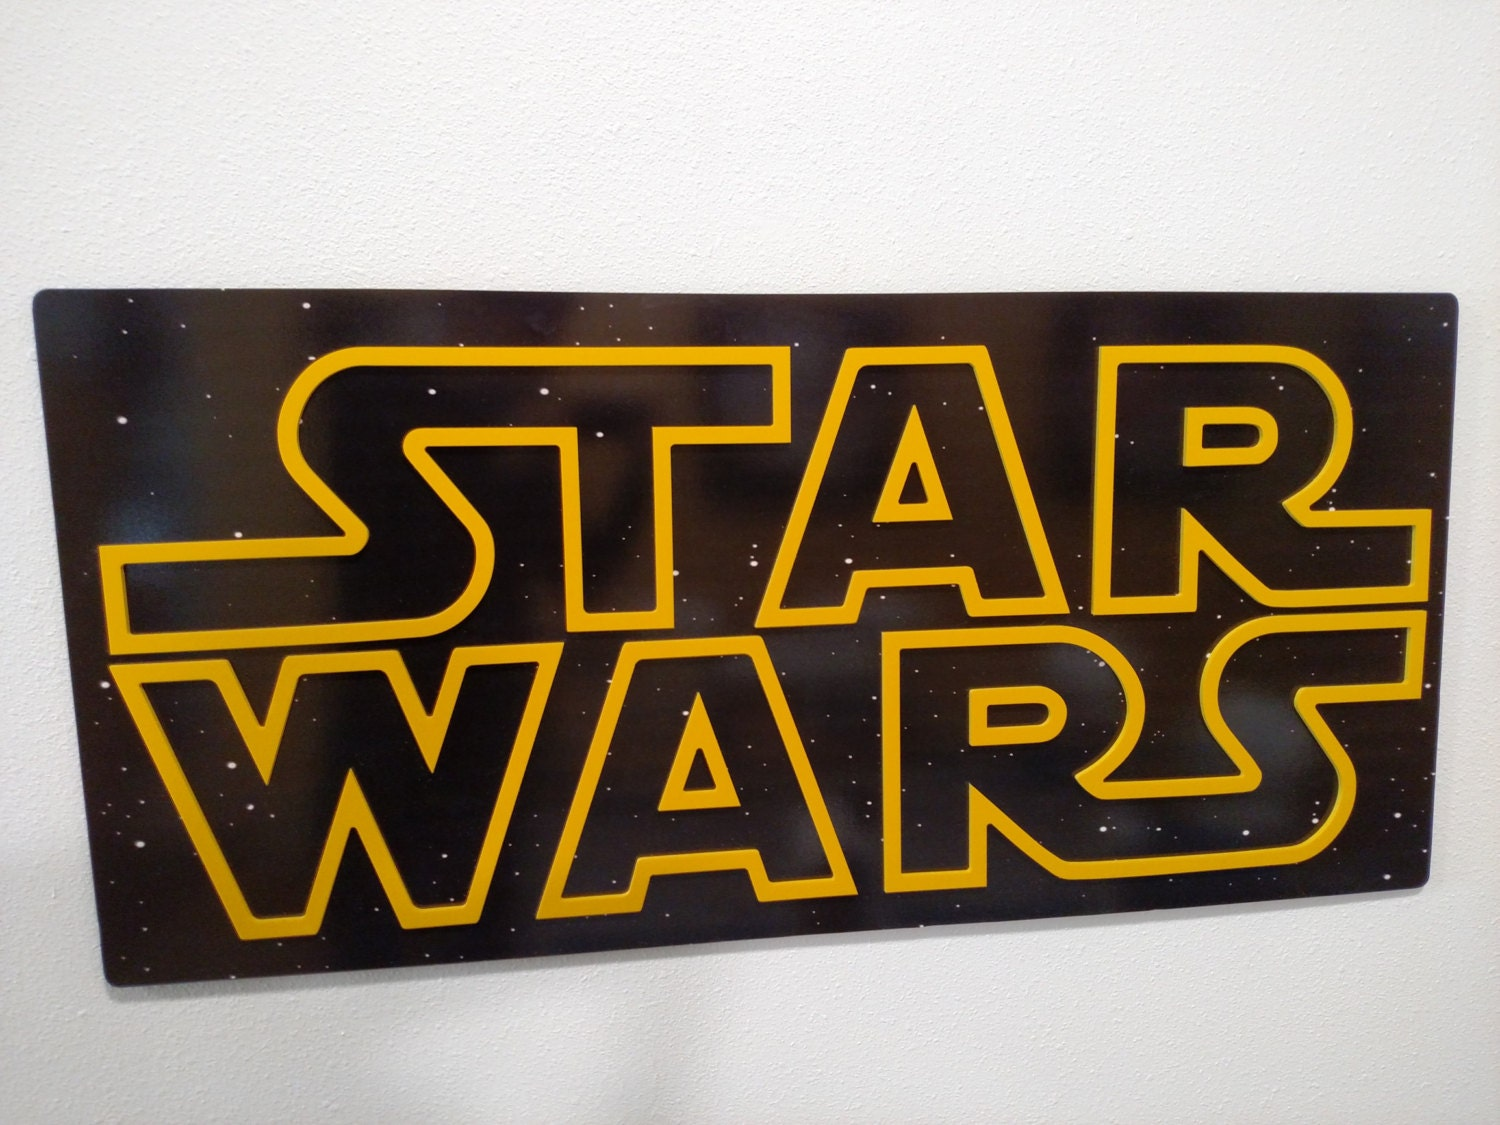 Star Wars Sign. Acupuncture Online Schools Photo Book Website. Cheapest Car Insurance Illinois. Storage Units In Lancaster Pa. Interior Design New Jersey Program Tv Online. Top 50 Life Insurance Companies. English Teaching Universities In Germany. Ordering A Credit Report Secure Email Address. Business Analysis Degree Espn Hd Dish Network